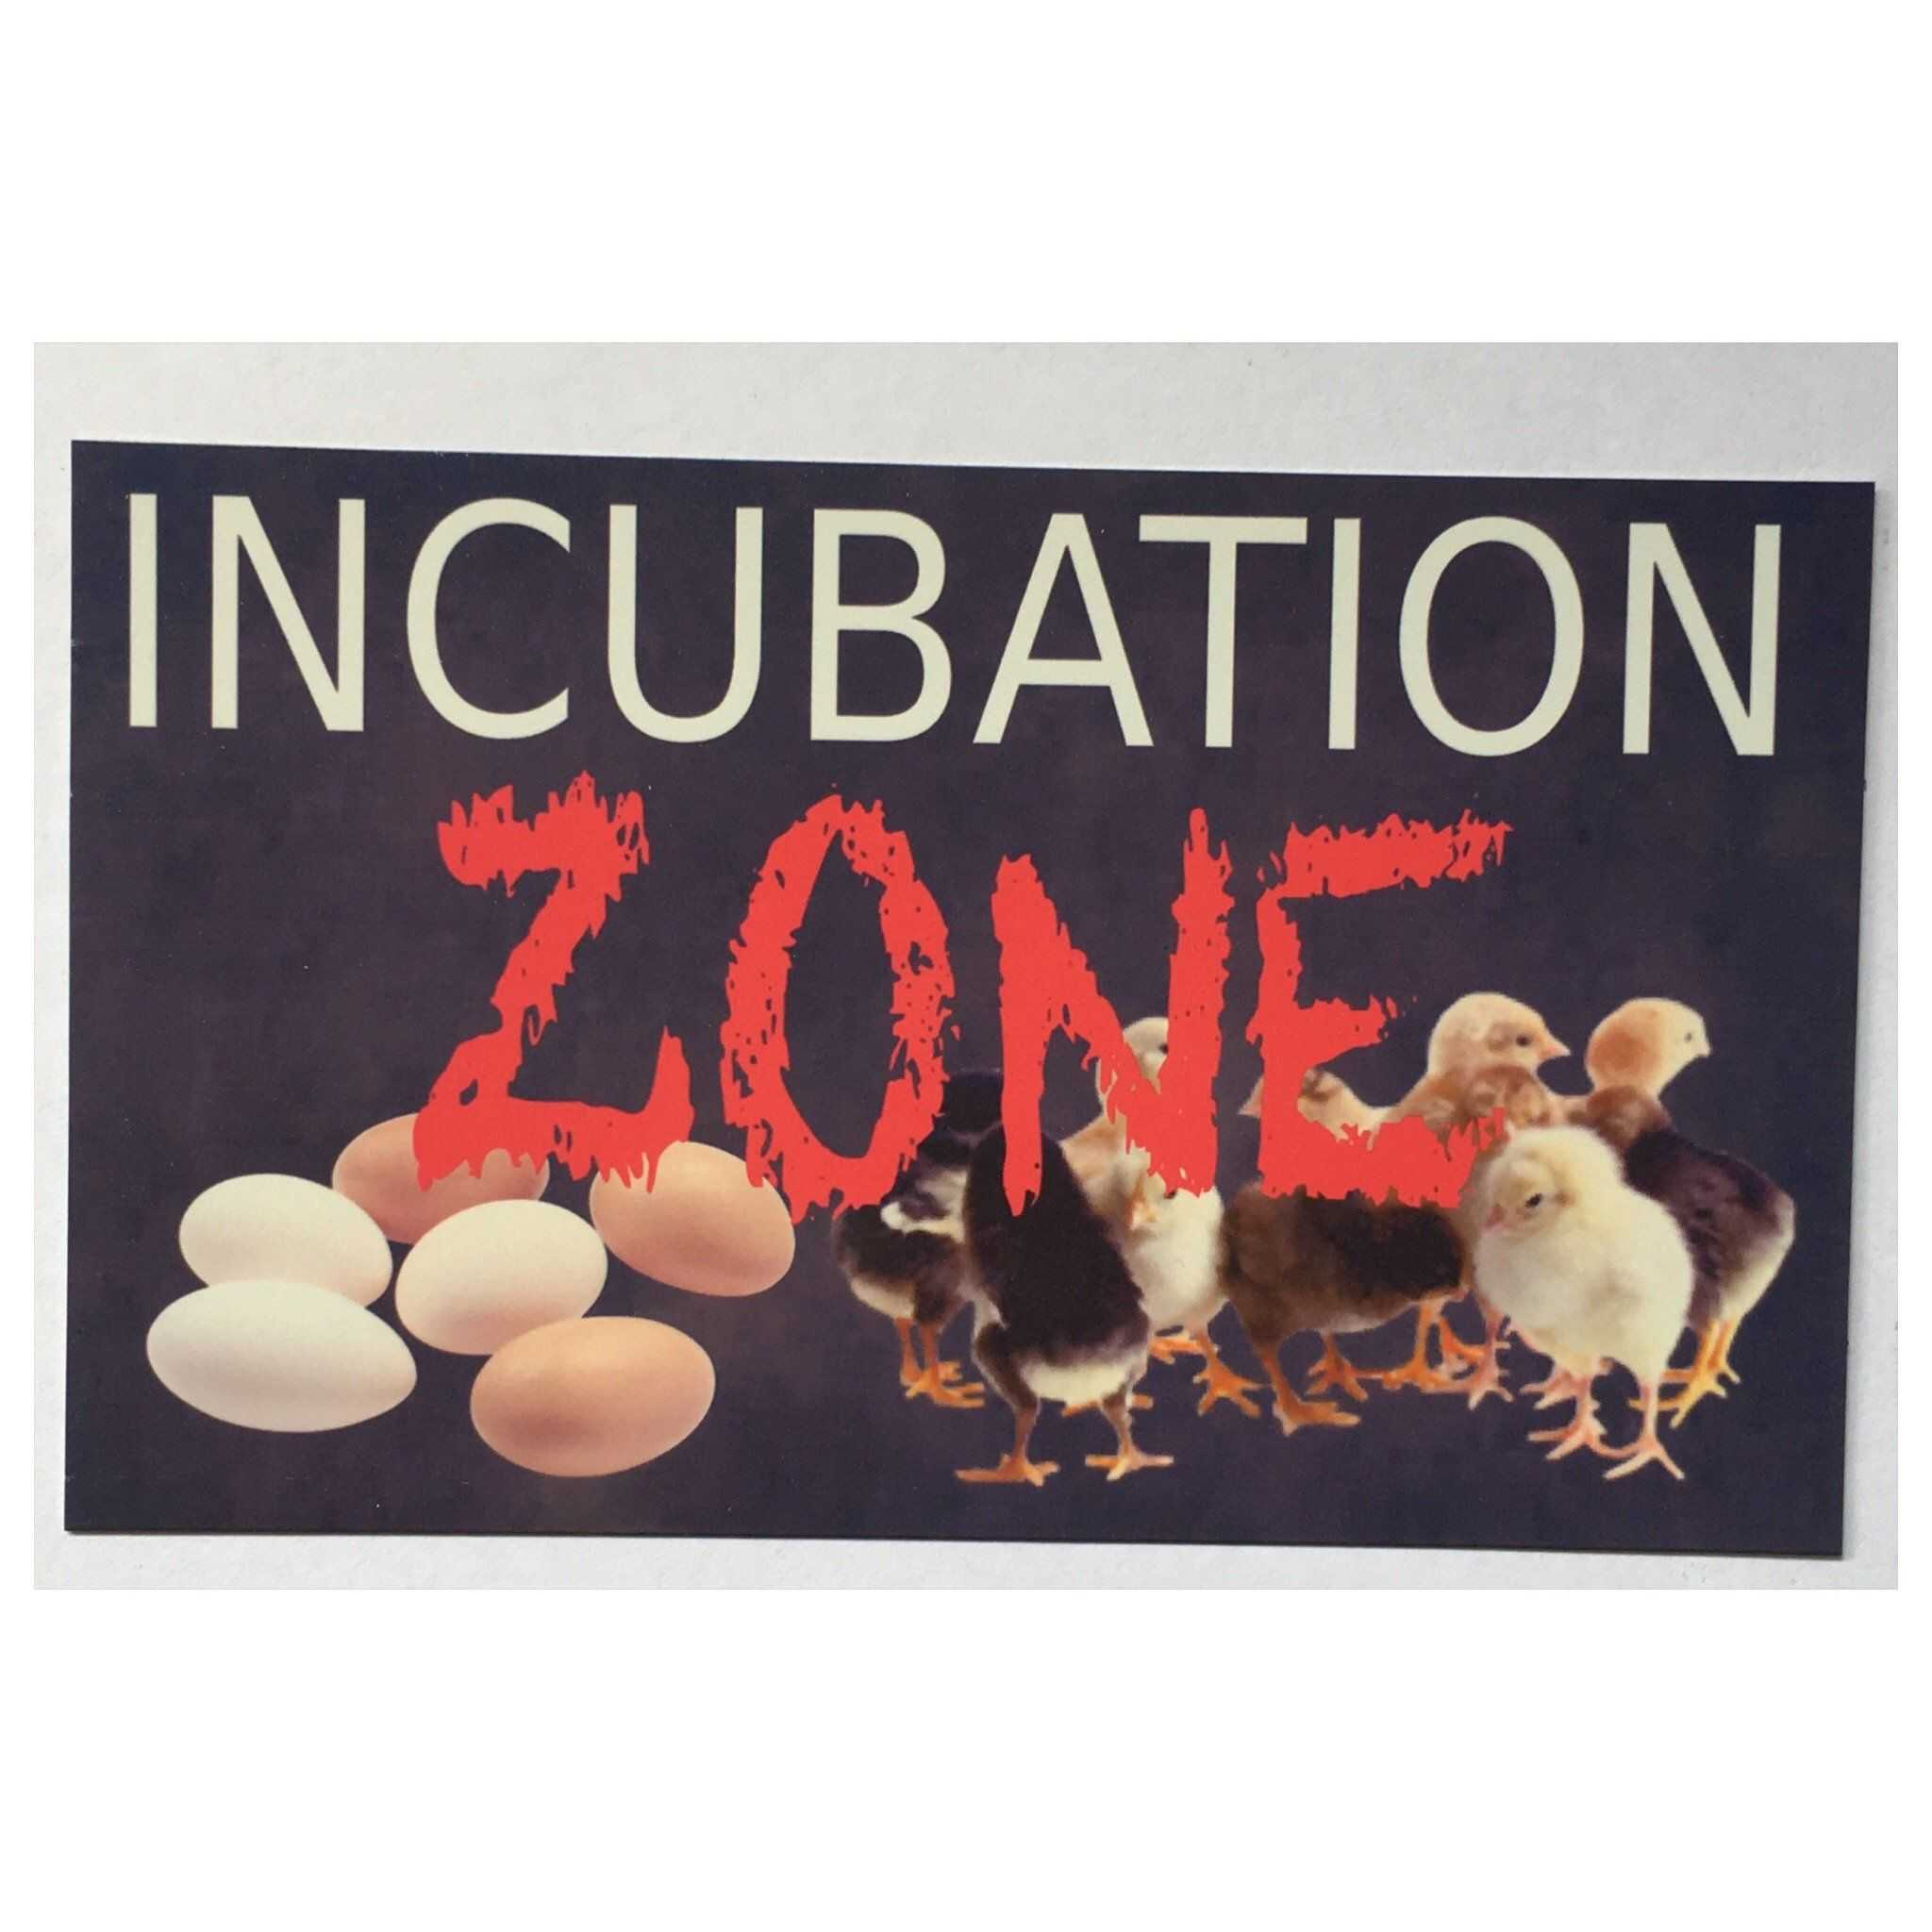 Chicken Incubation Zone Baby Chicks Eggs Sign | The Renmy Store